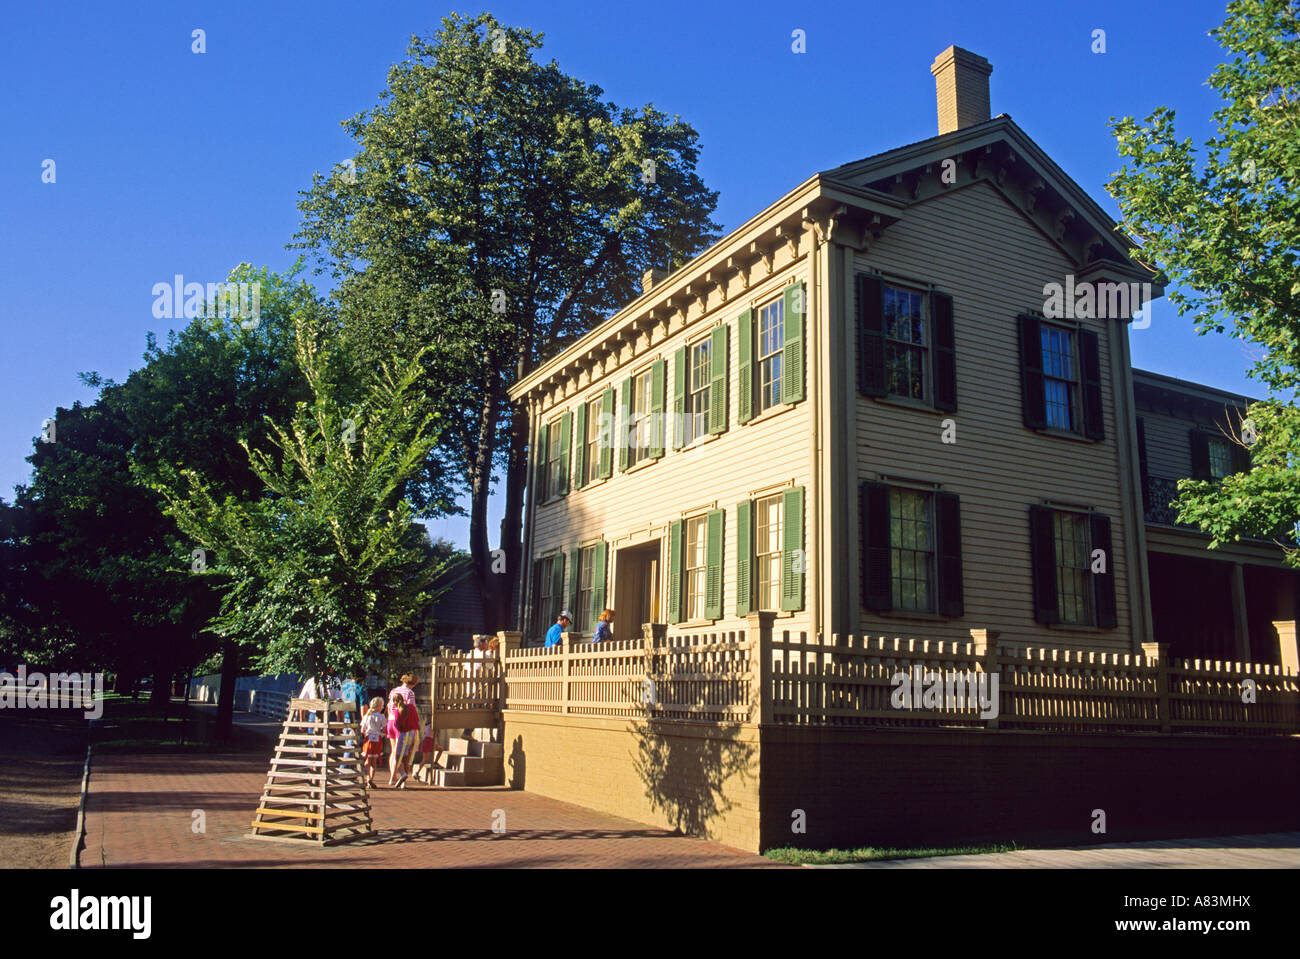 Abraham Lincoln s home in Springfield Illlinois - Stock Image